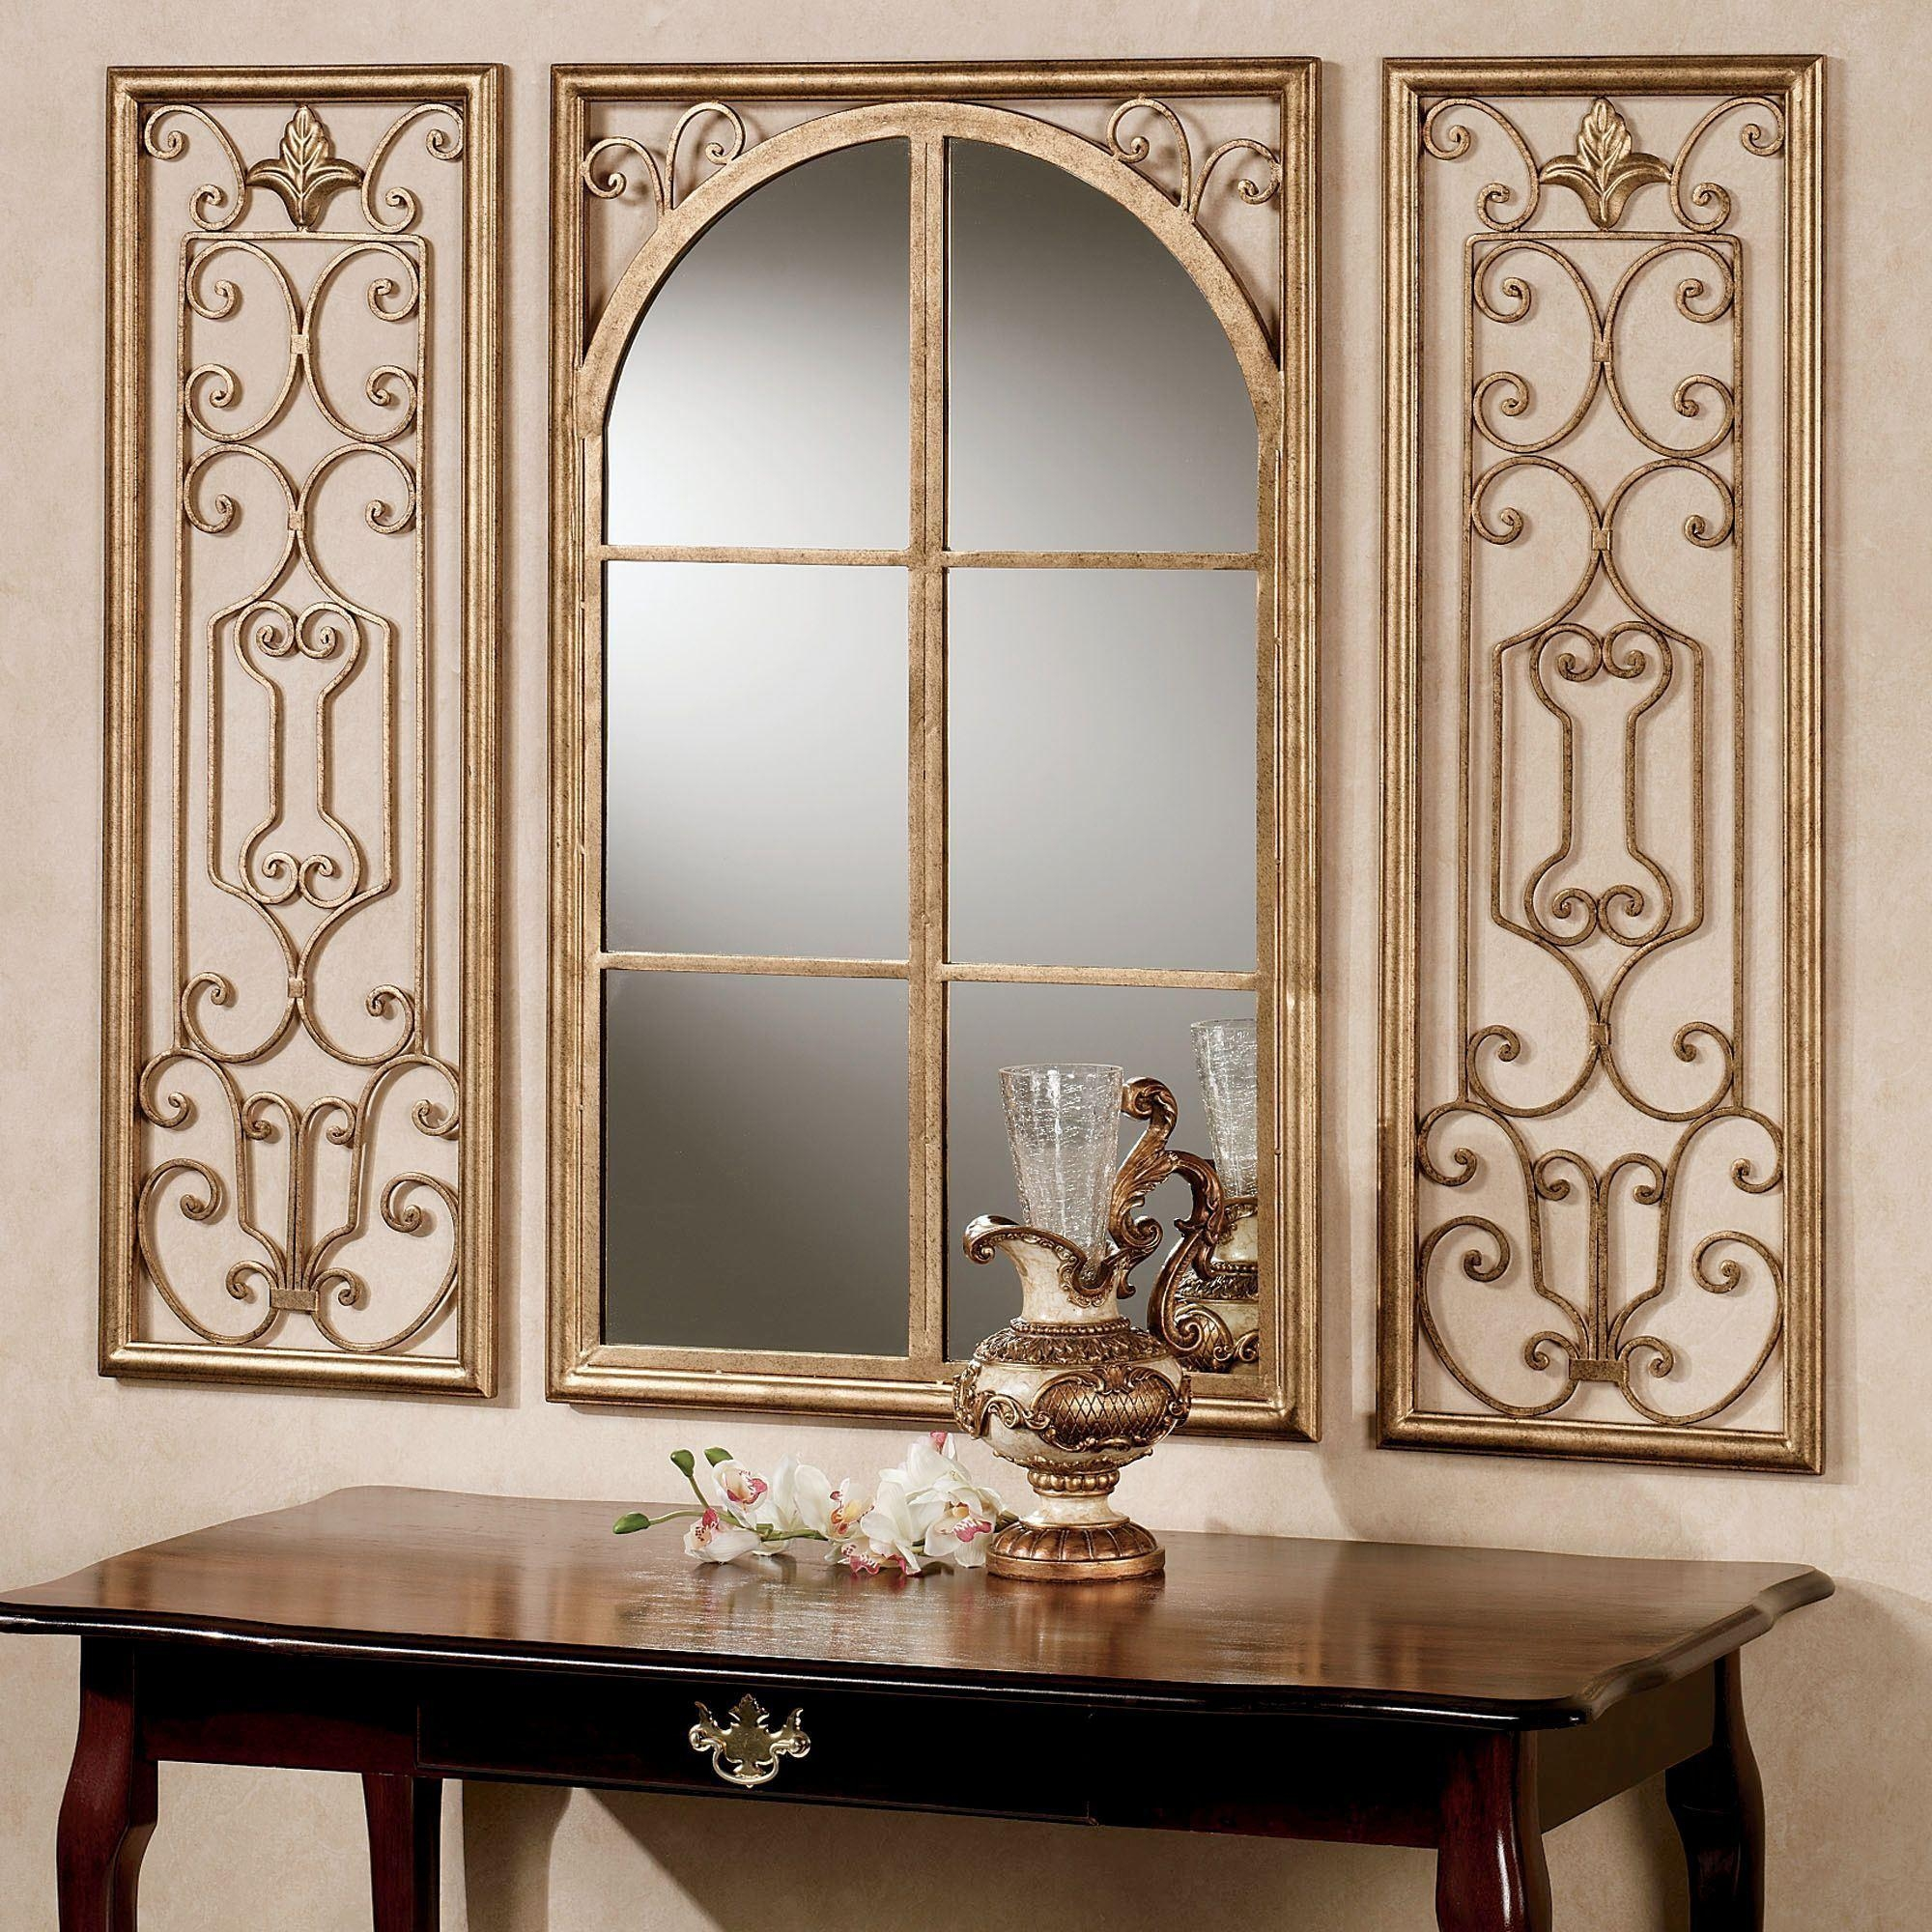 Provence Antique Gold Finish Wall Mirror Set In Bronze Wall Mirror (Image 13 of 20)